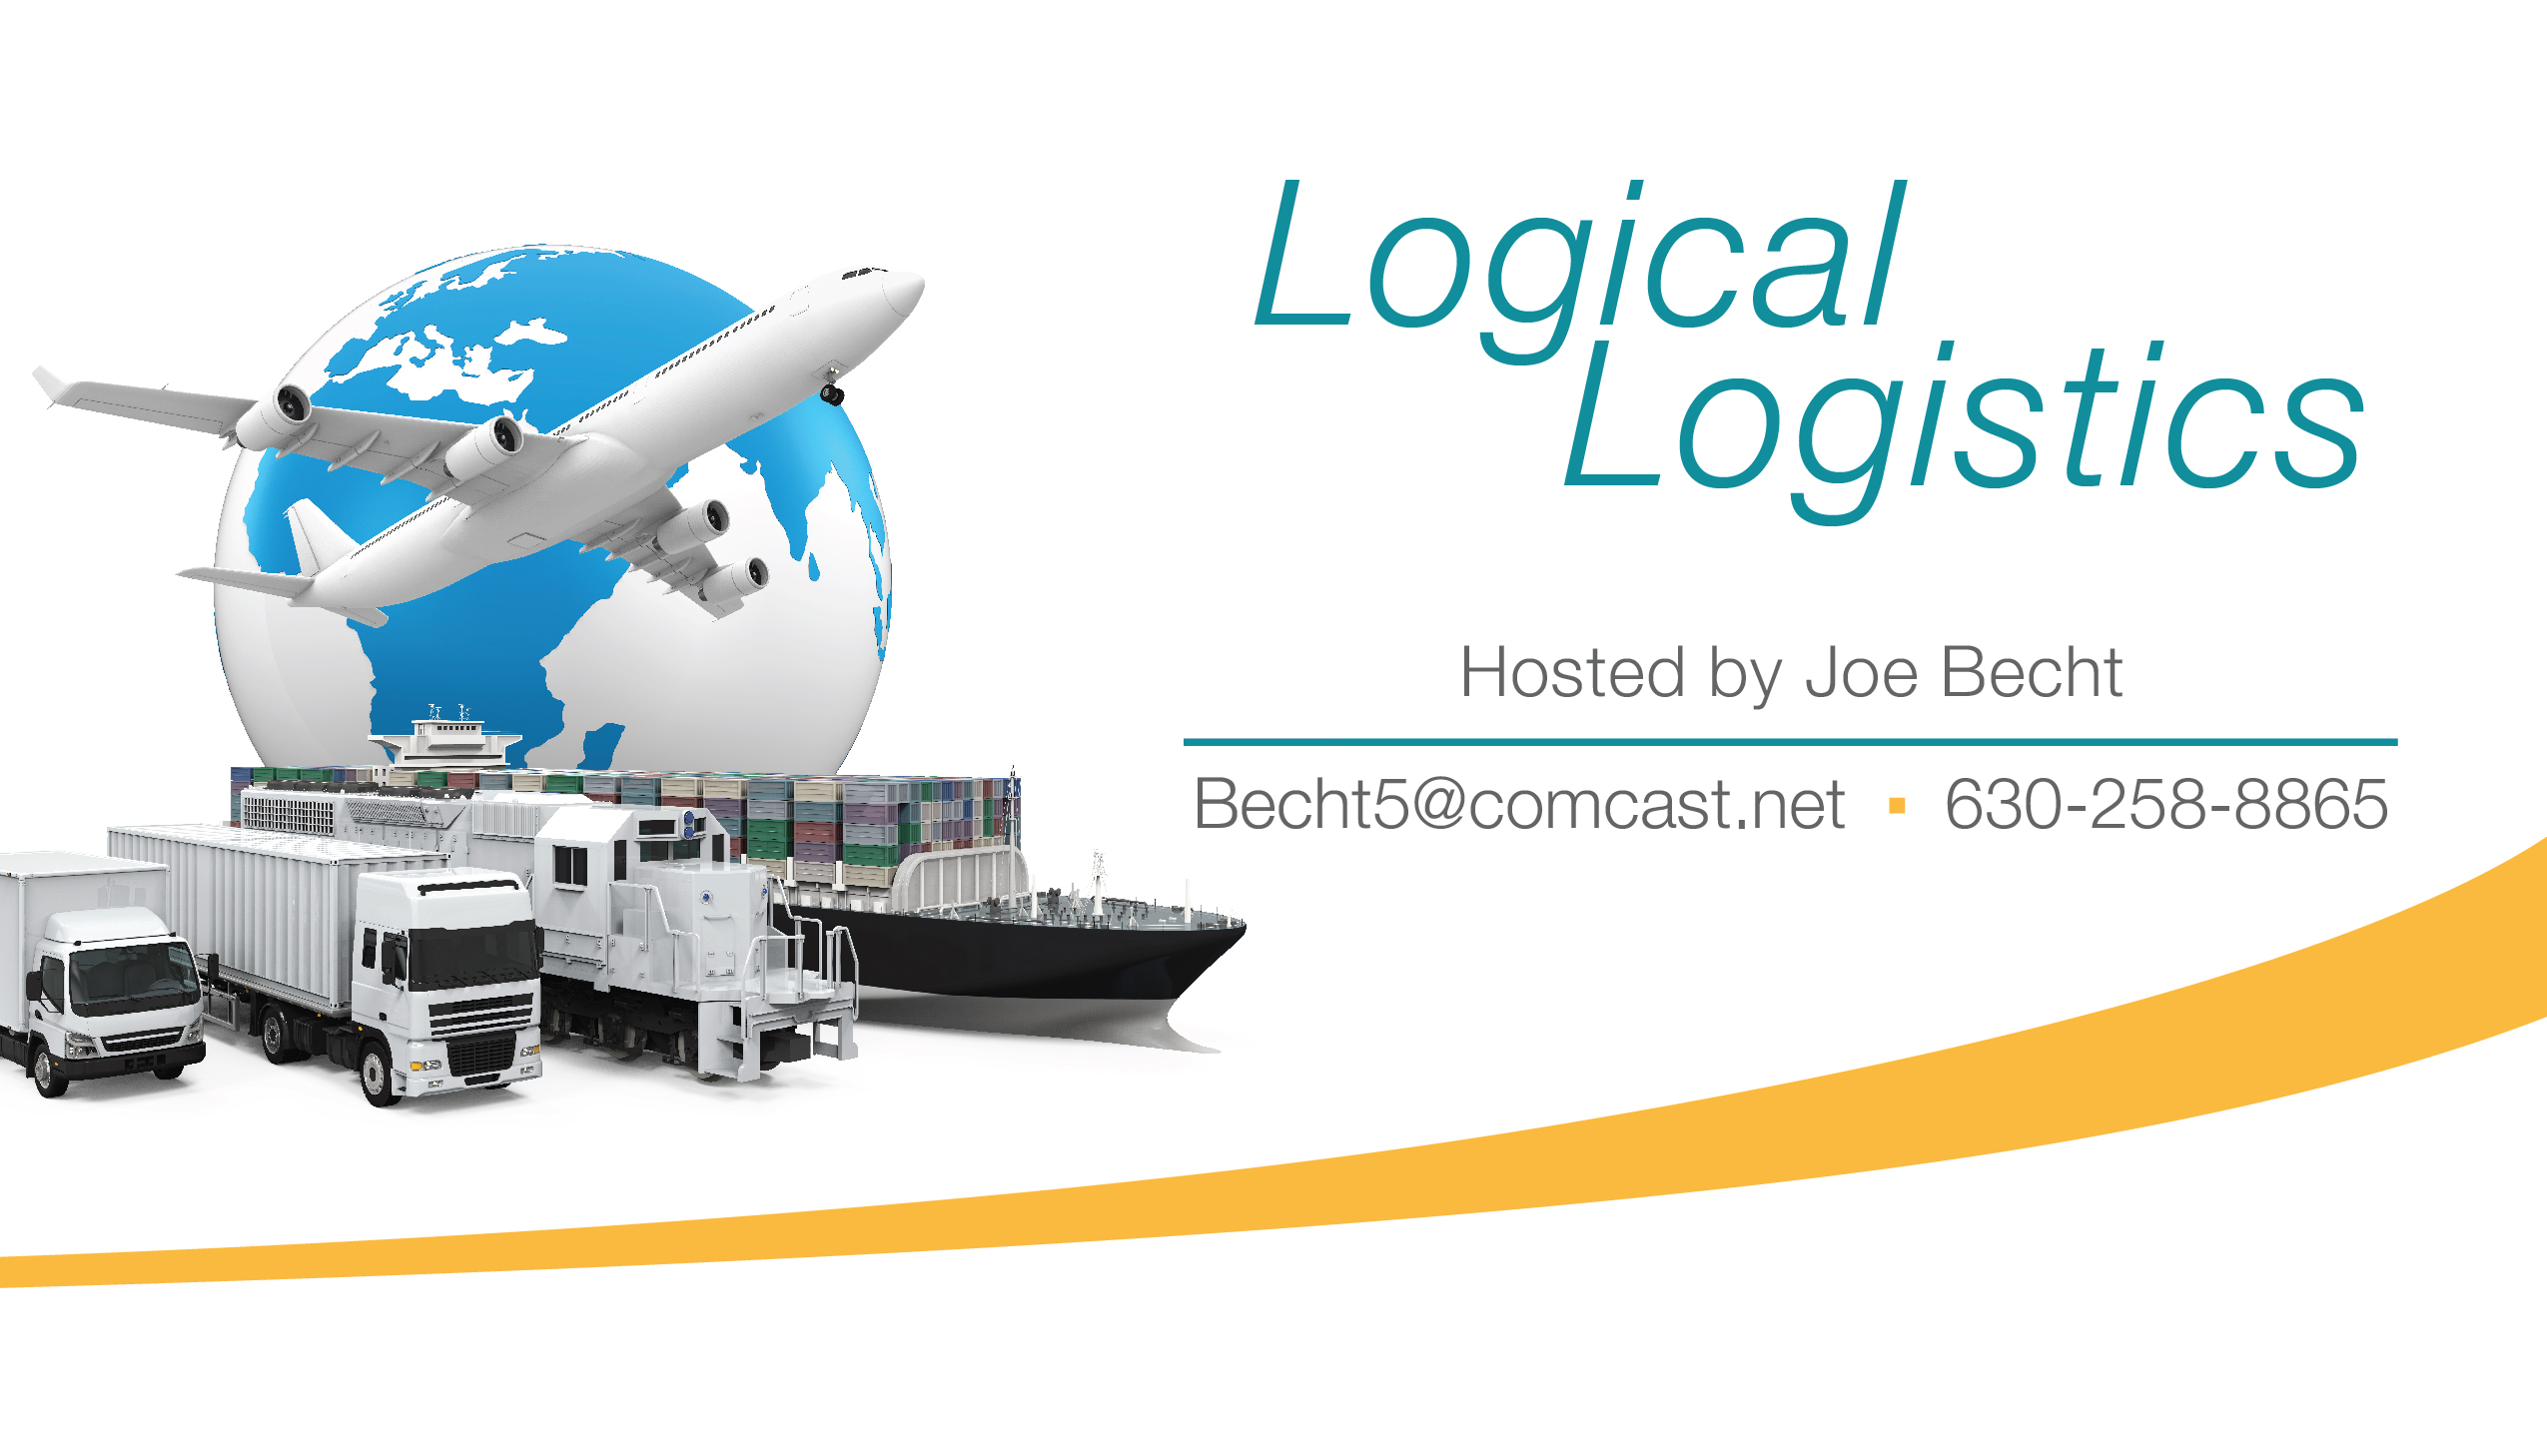 Logistics Services in Chicago, Logistics Services